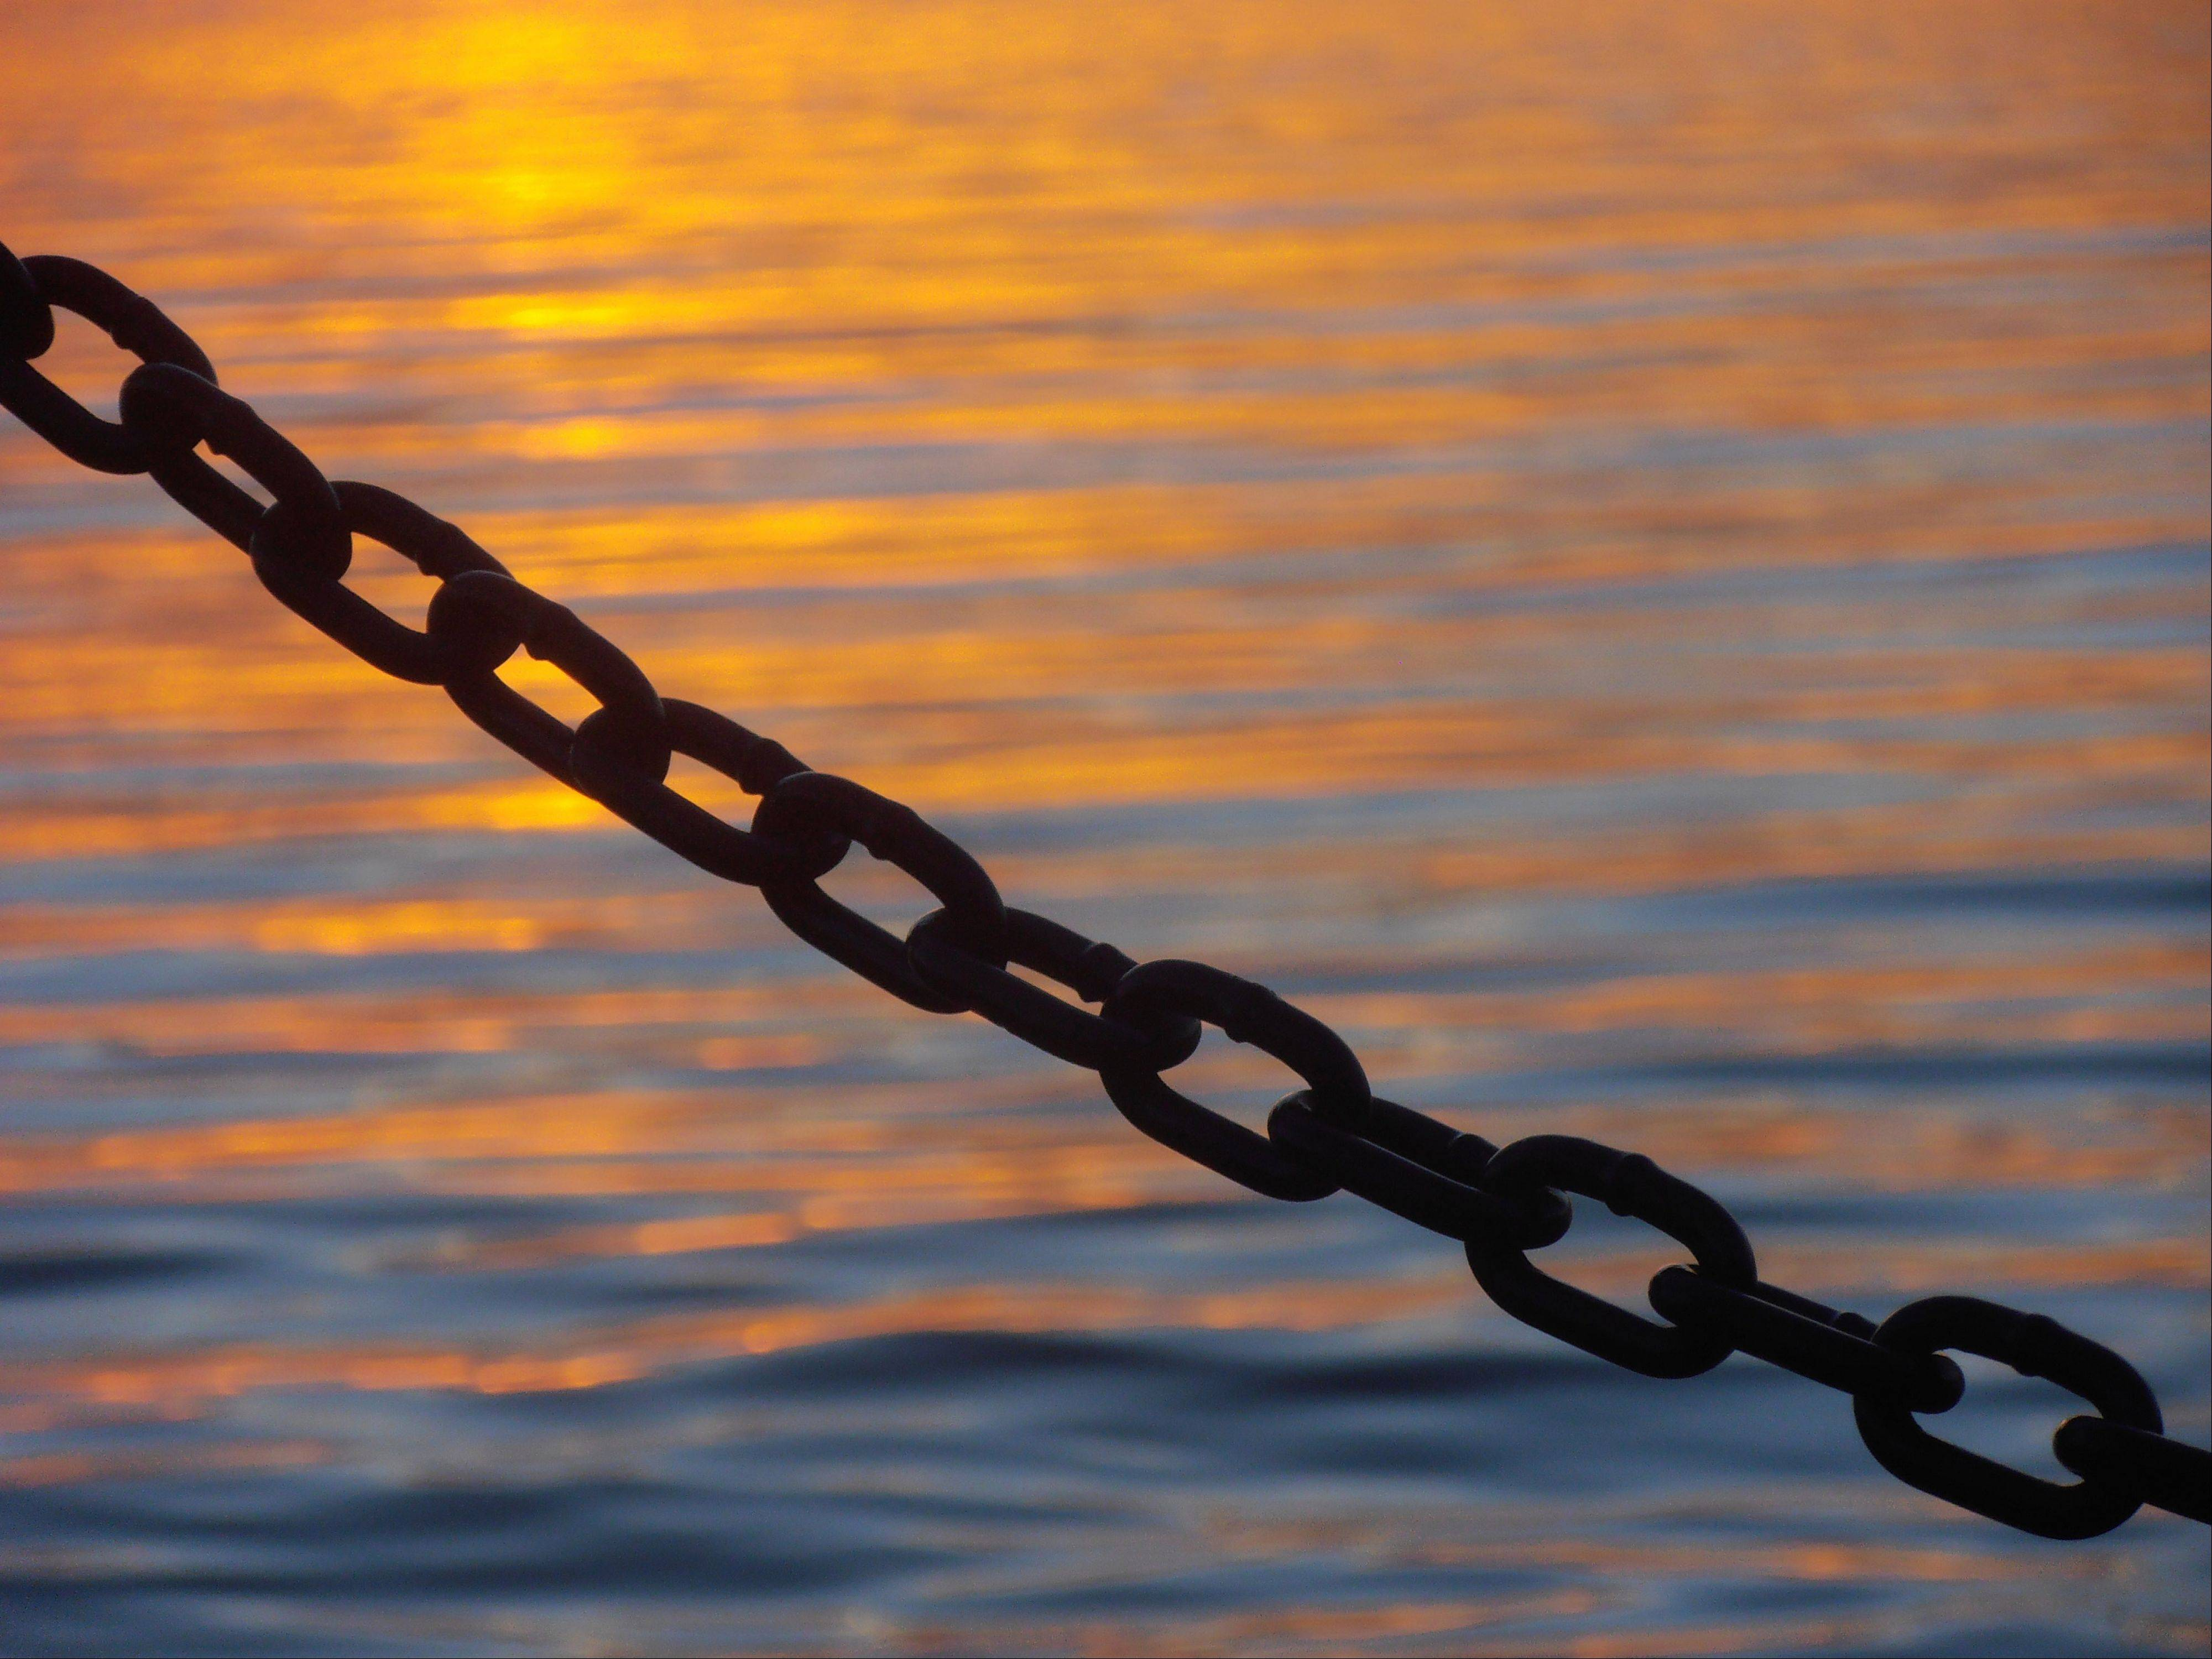 The silhouette of a chain is set off by the sunset reflected on Lake Zurich this summer.